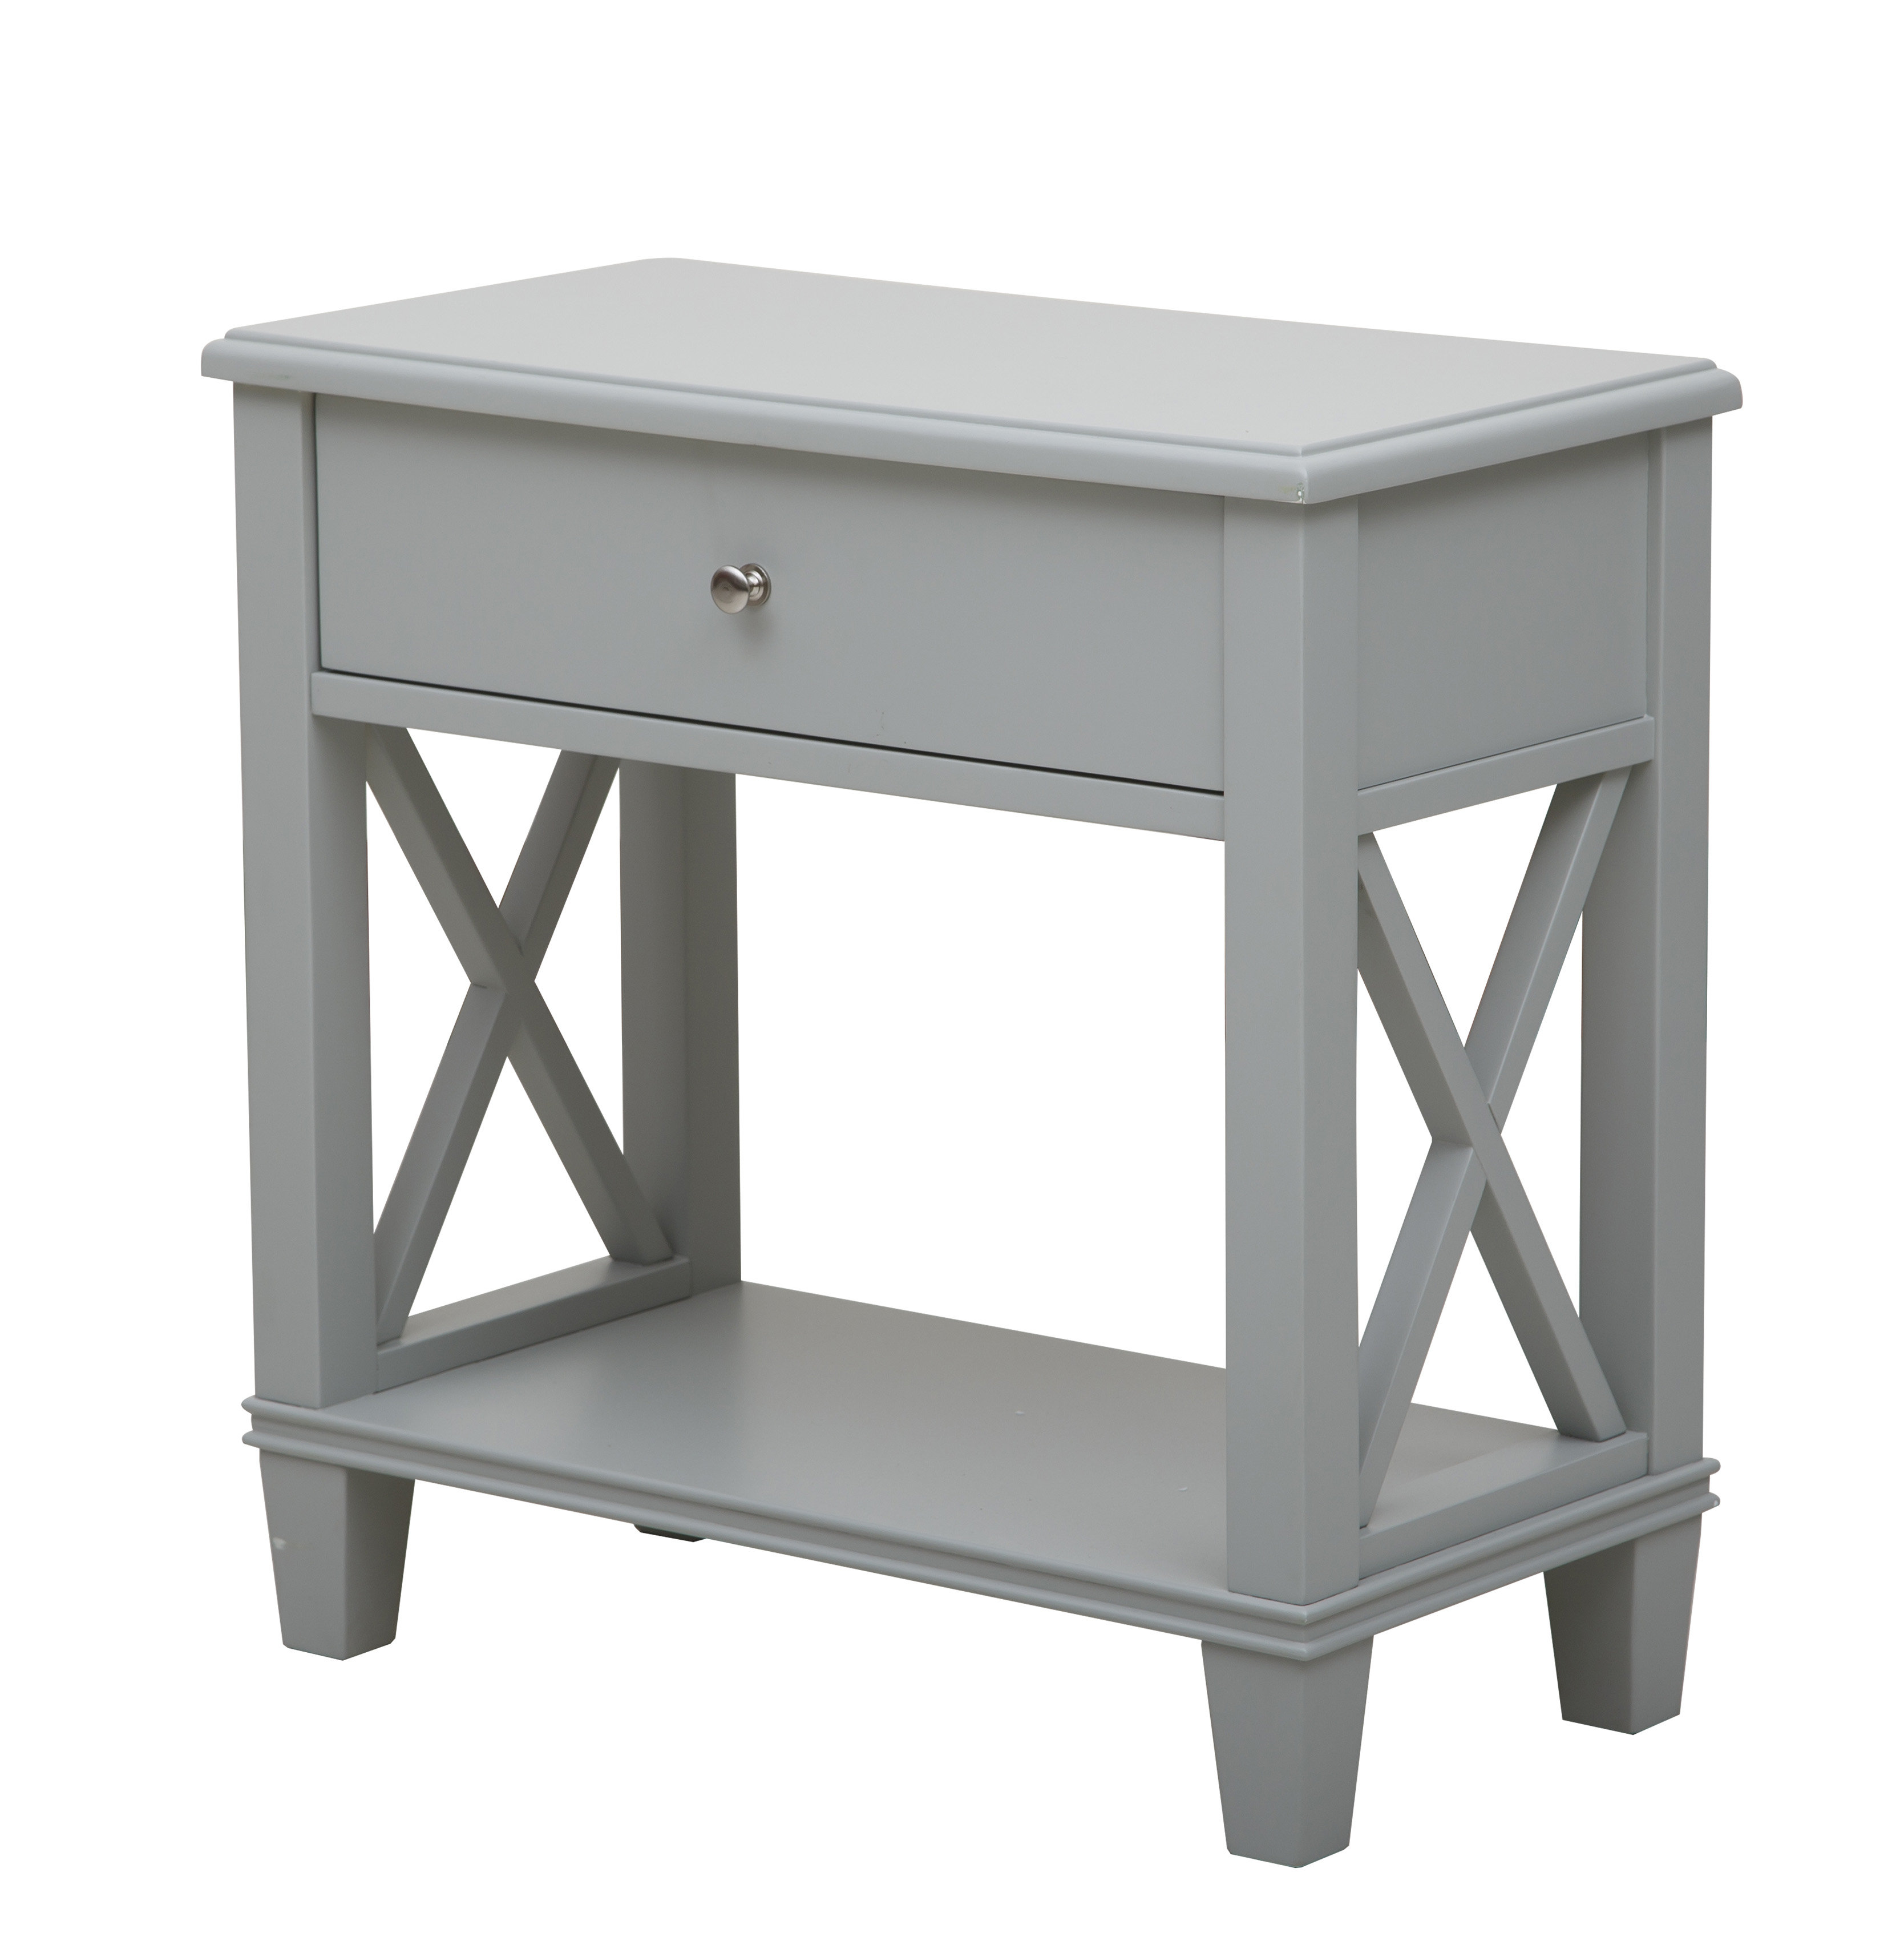 beachcrest home flintridge end table reviews accent with barn door multi color coffee white and black side painted tables living room bulk tablecloths for weddings counter west